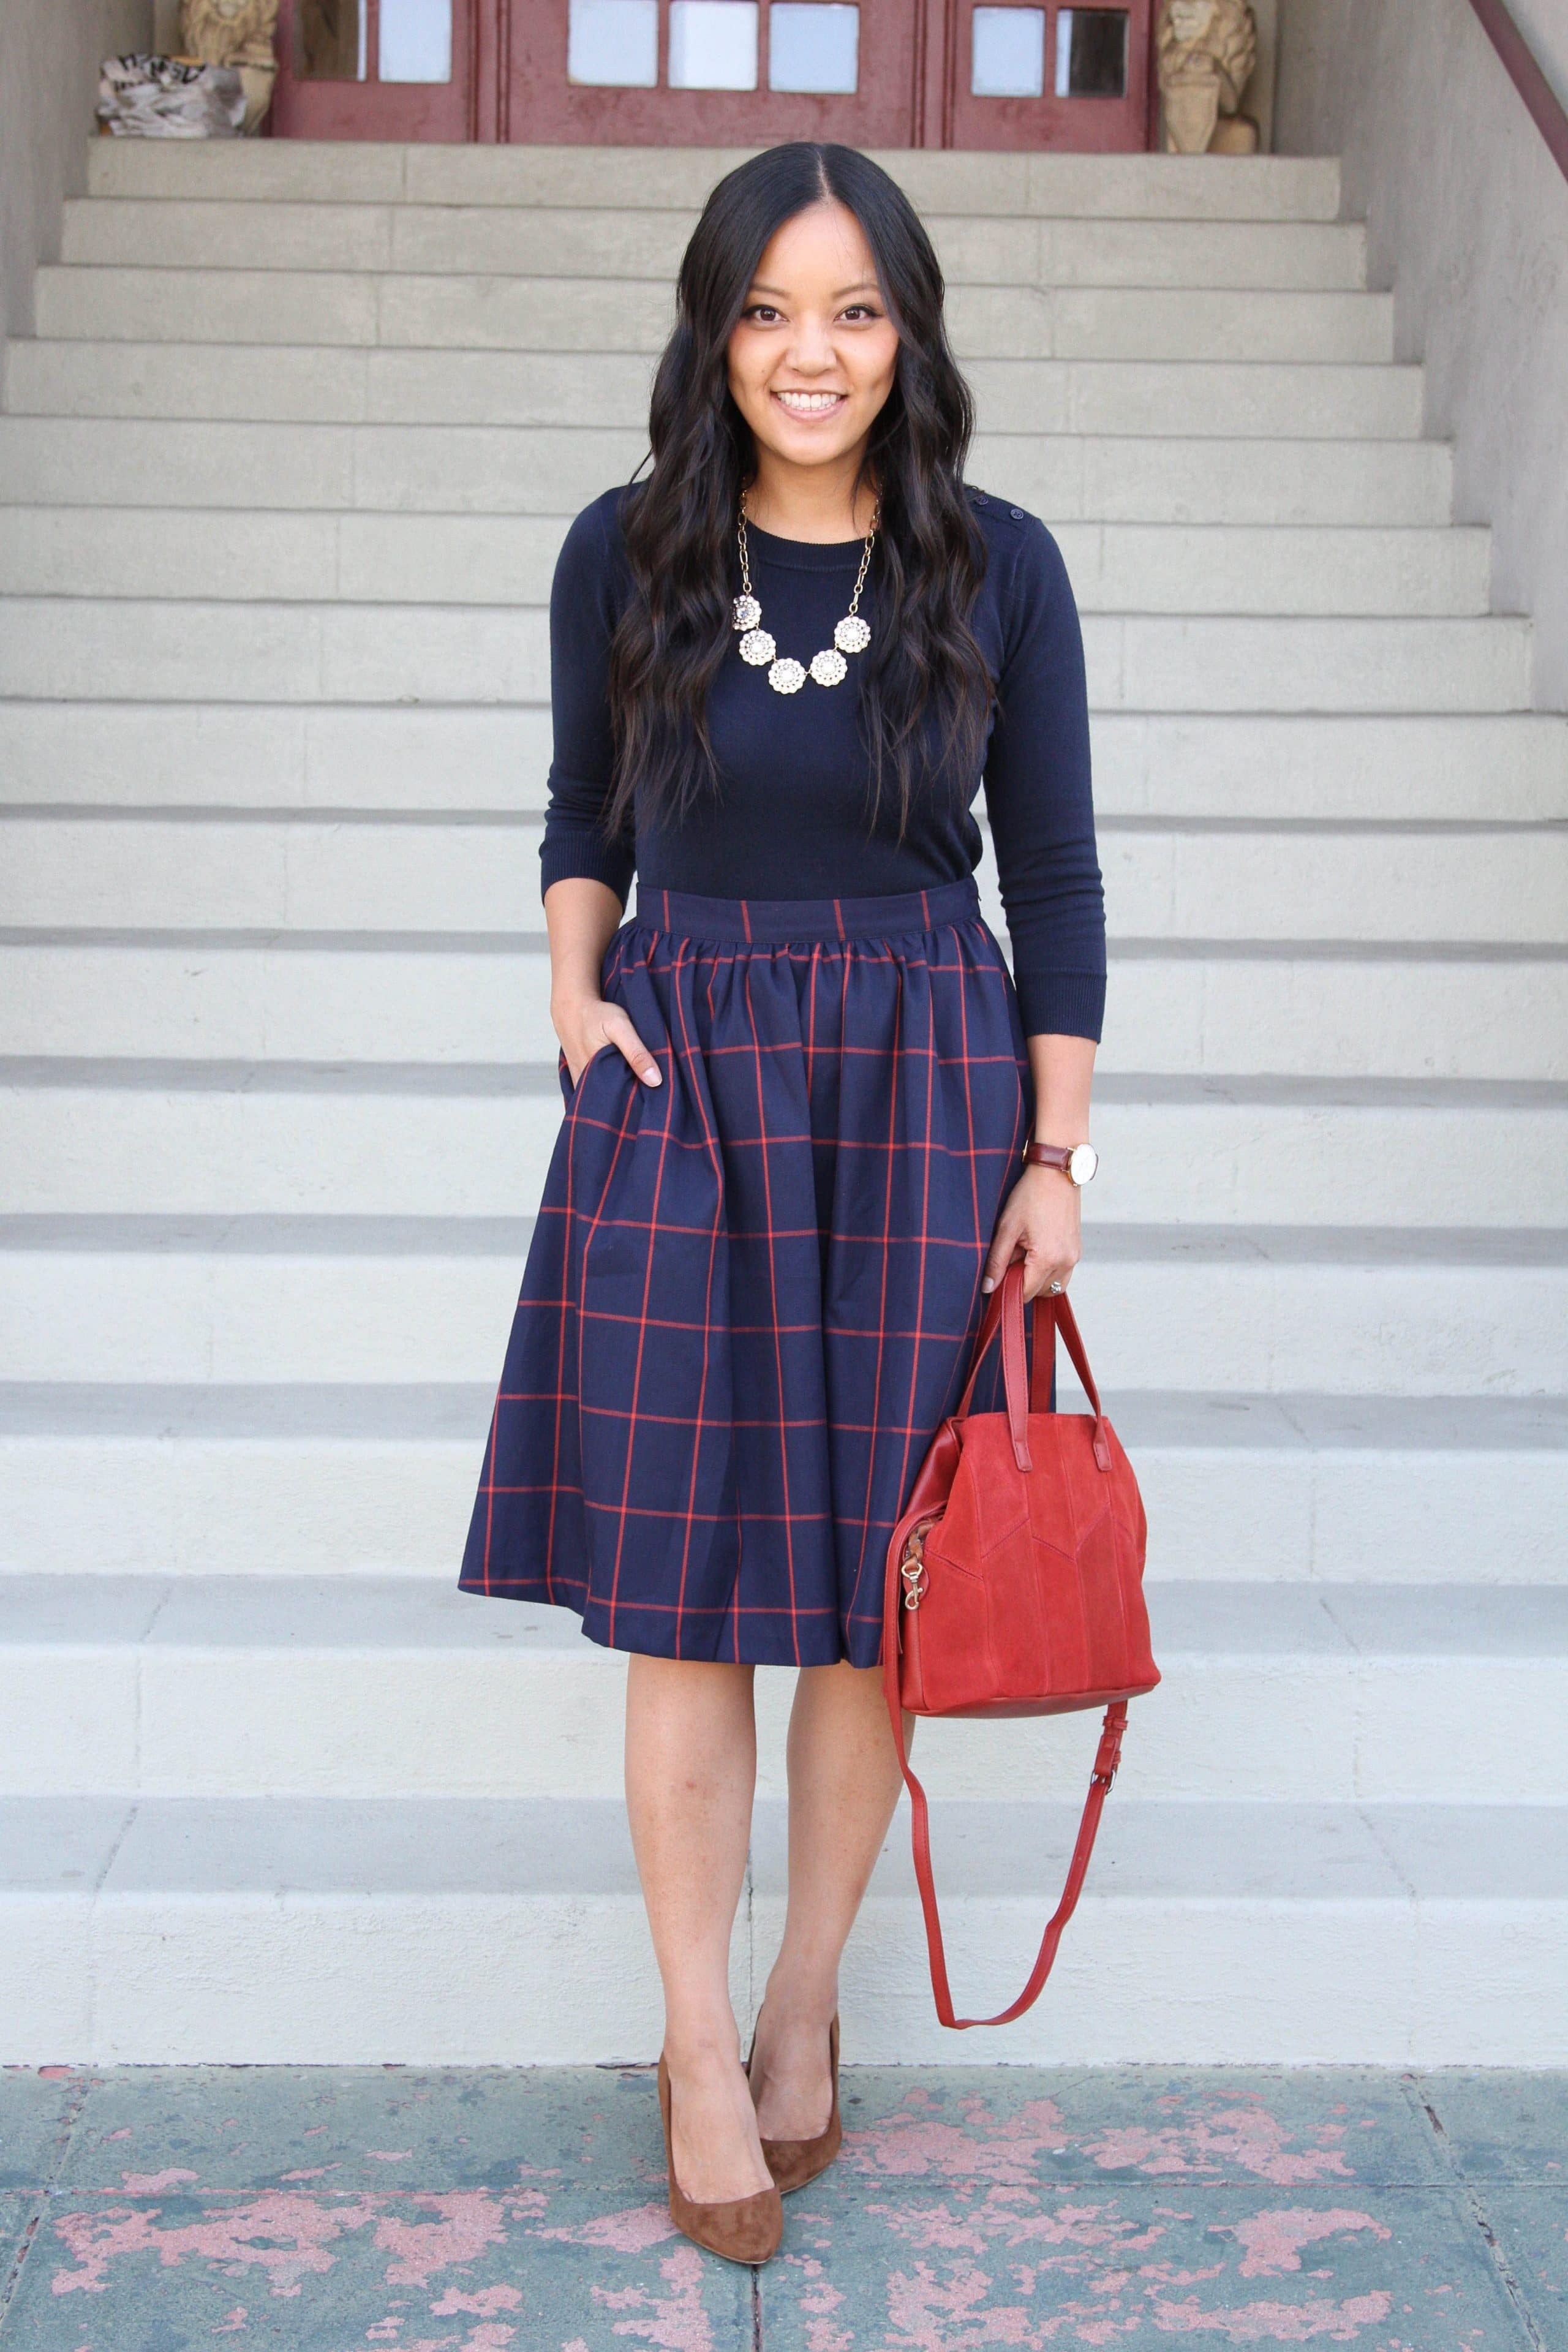 Red bag + pumps + Navy Red Skirt + Pullover Sweater + Statement Necklace